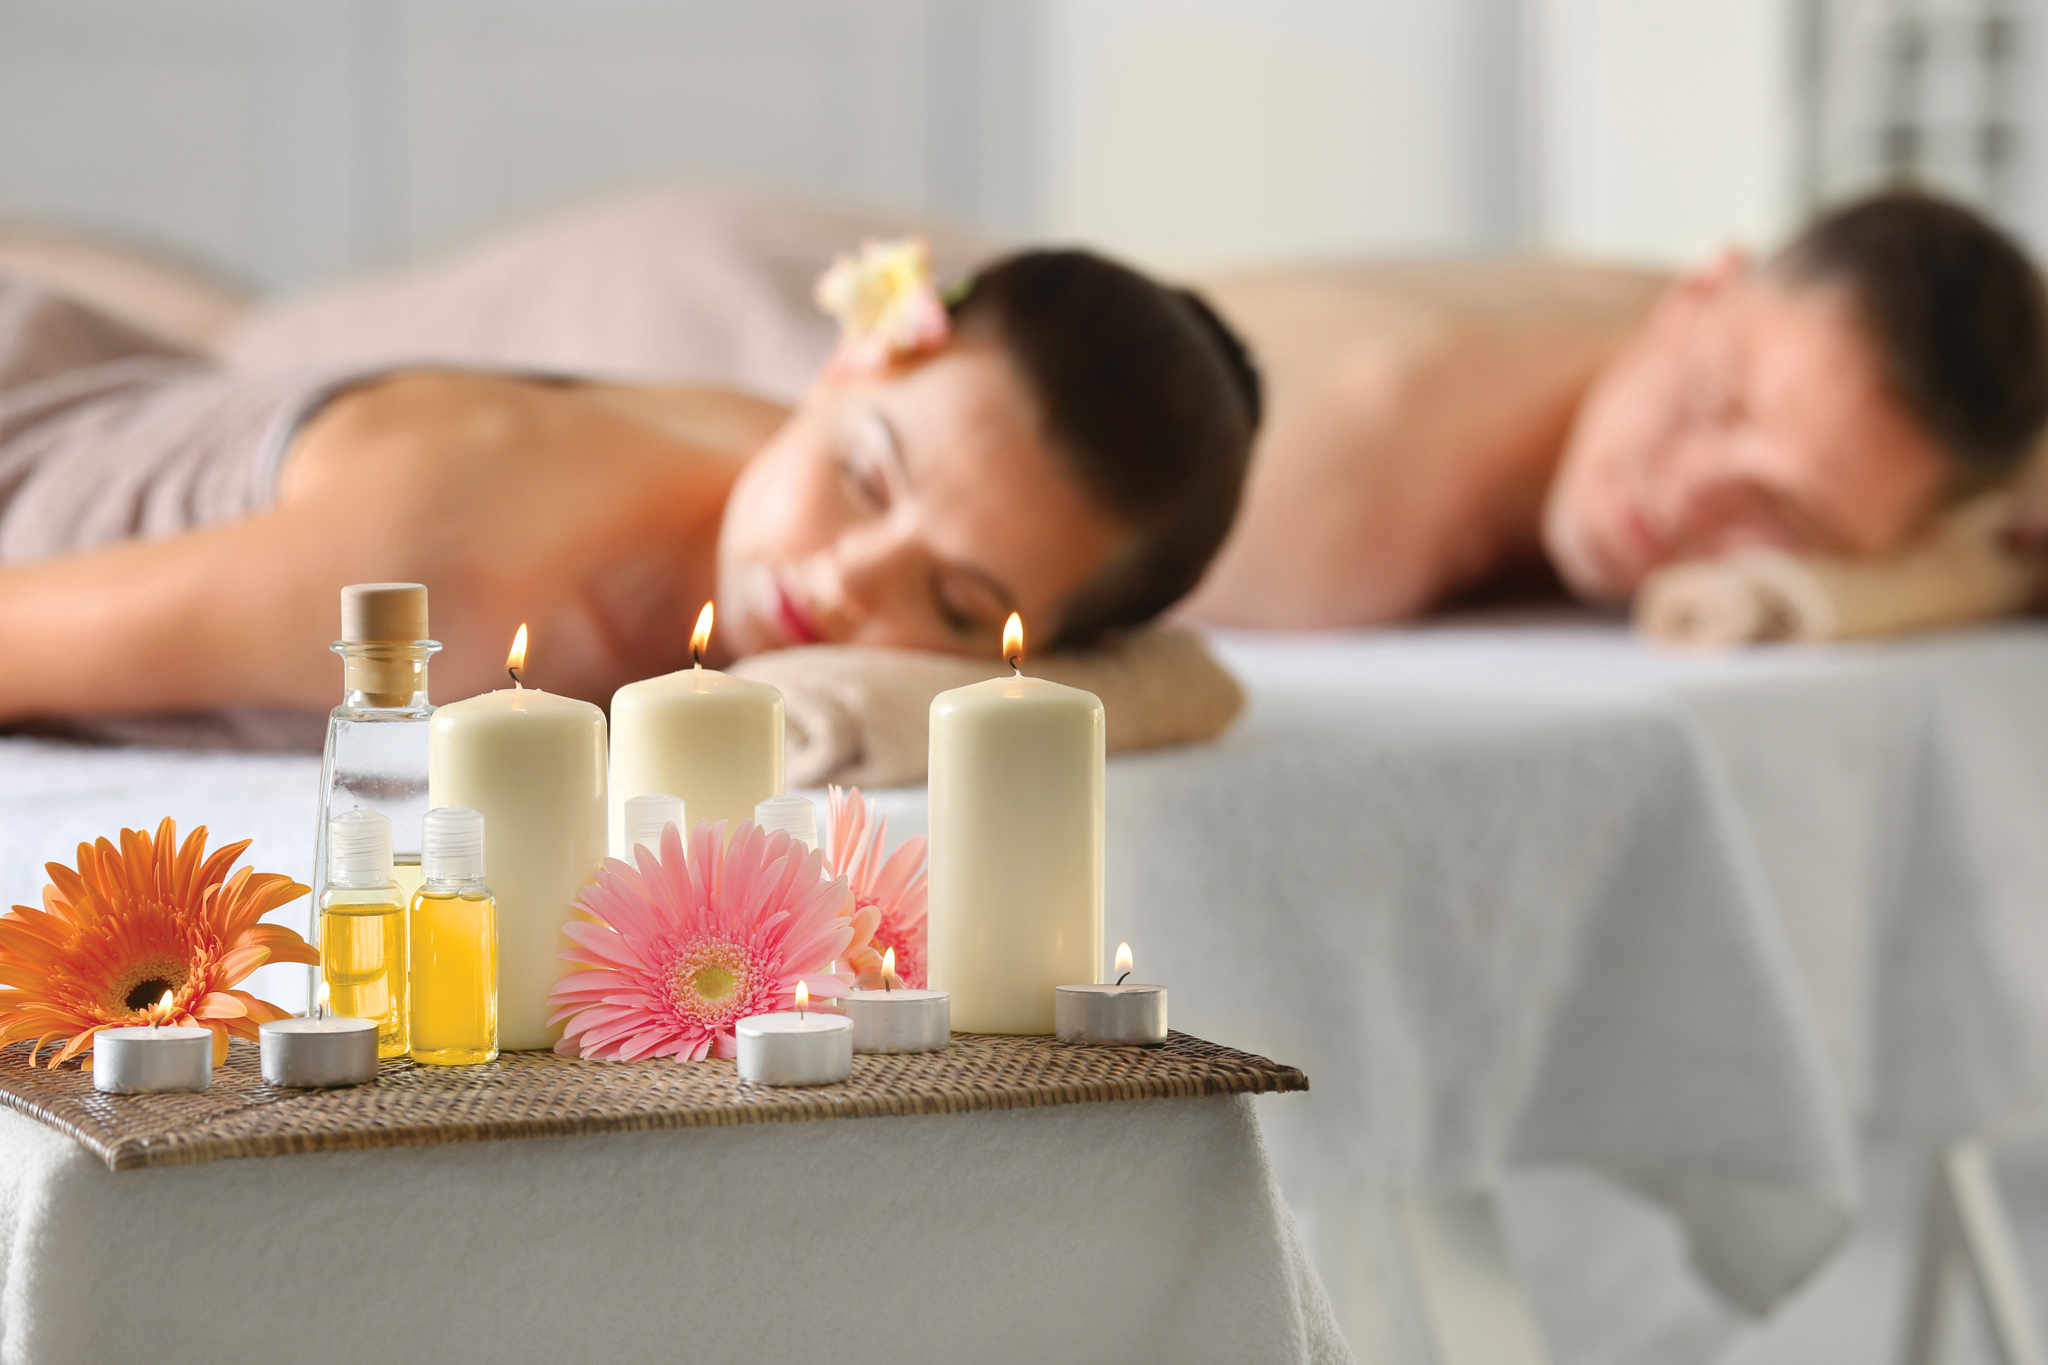 Pamper yourselves together at the spa